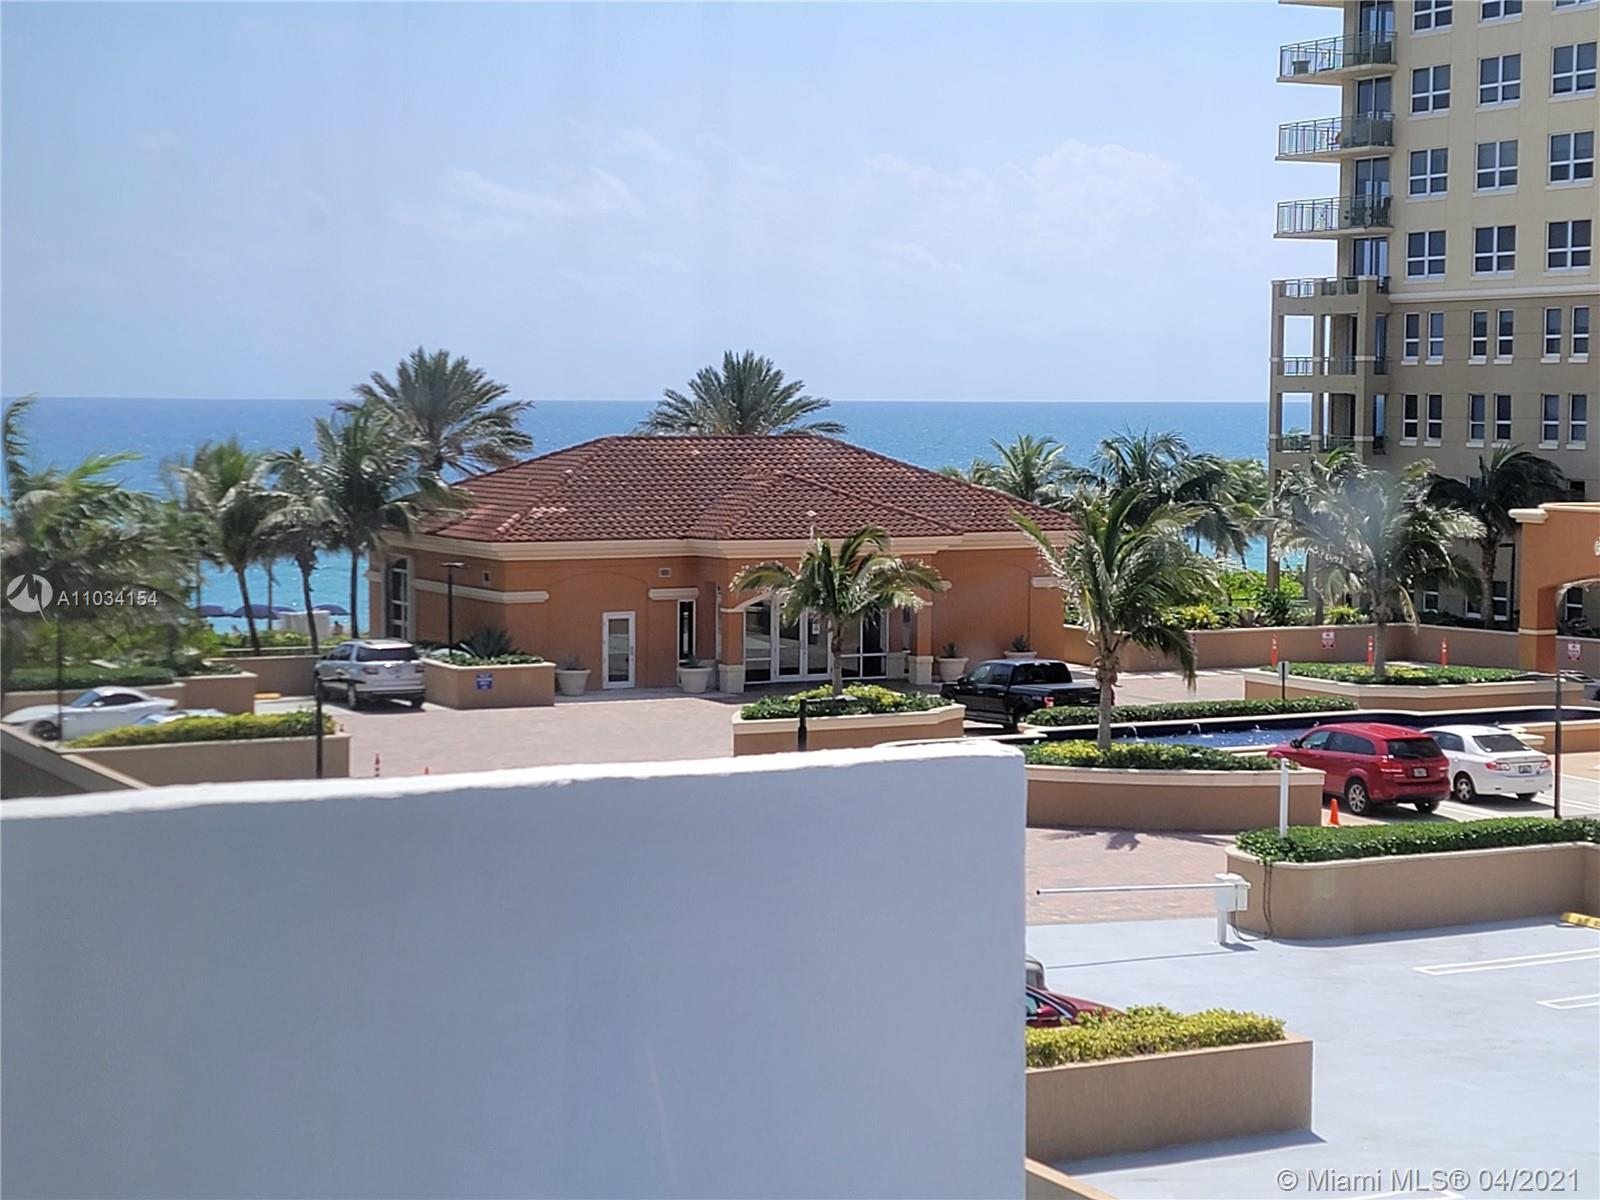 EASY BEACHFRONT LIVING!  PARTIAL OCEAN VIEWS FROM THE LARGE OPEN SOUTHEAST BALCONY. CUTE FUN, BEACHY